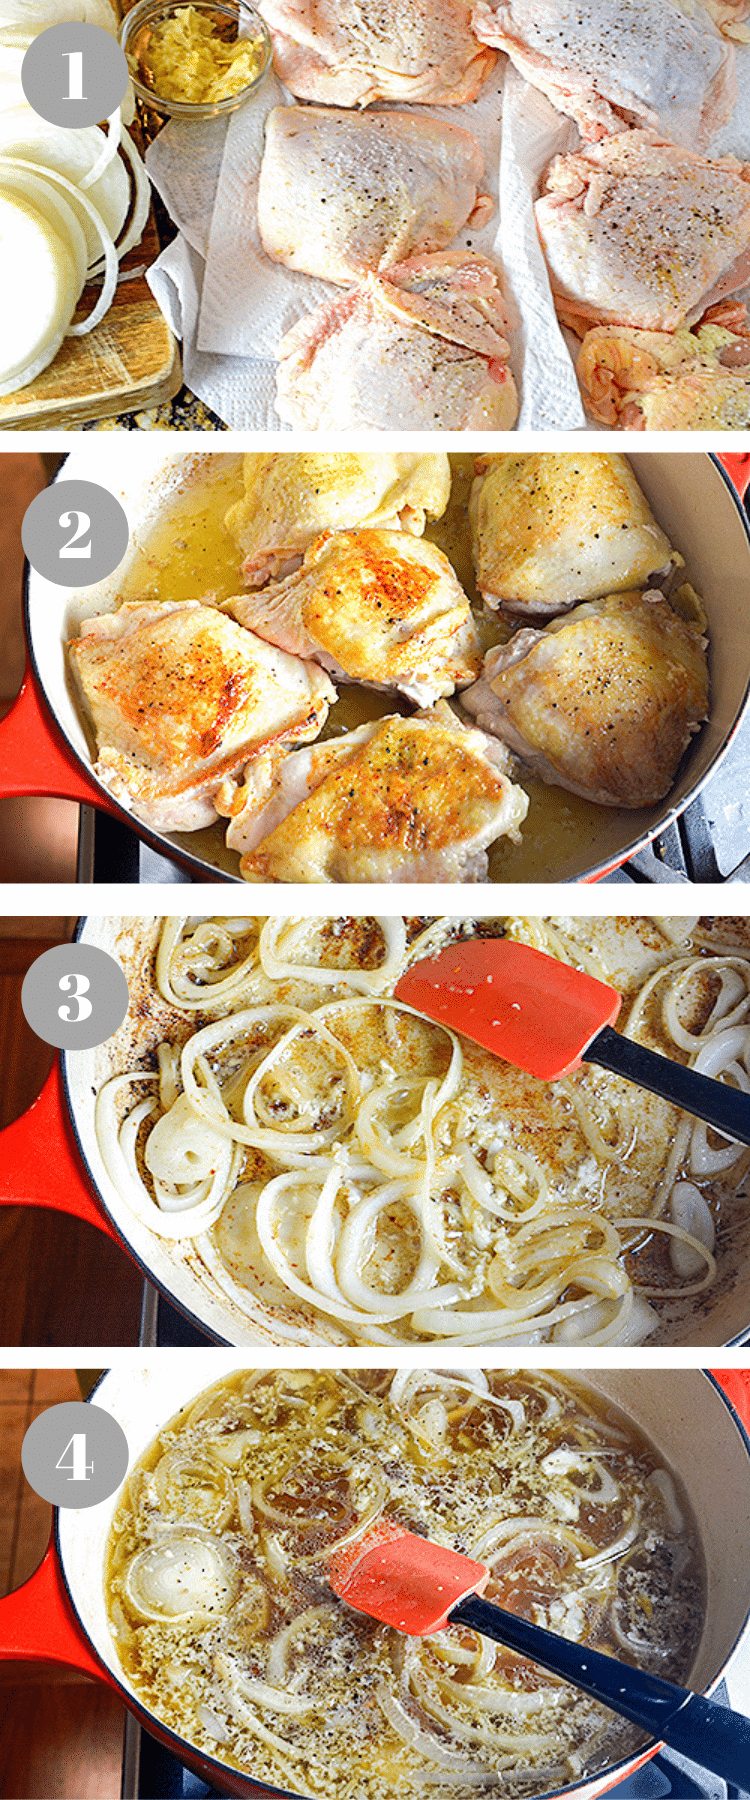 A box filled with different types of food on a plate, with Chicken Thighs